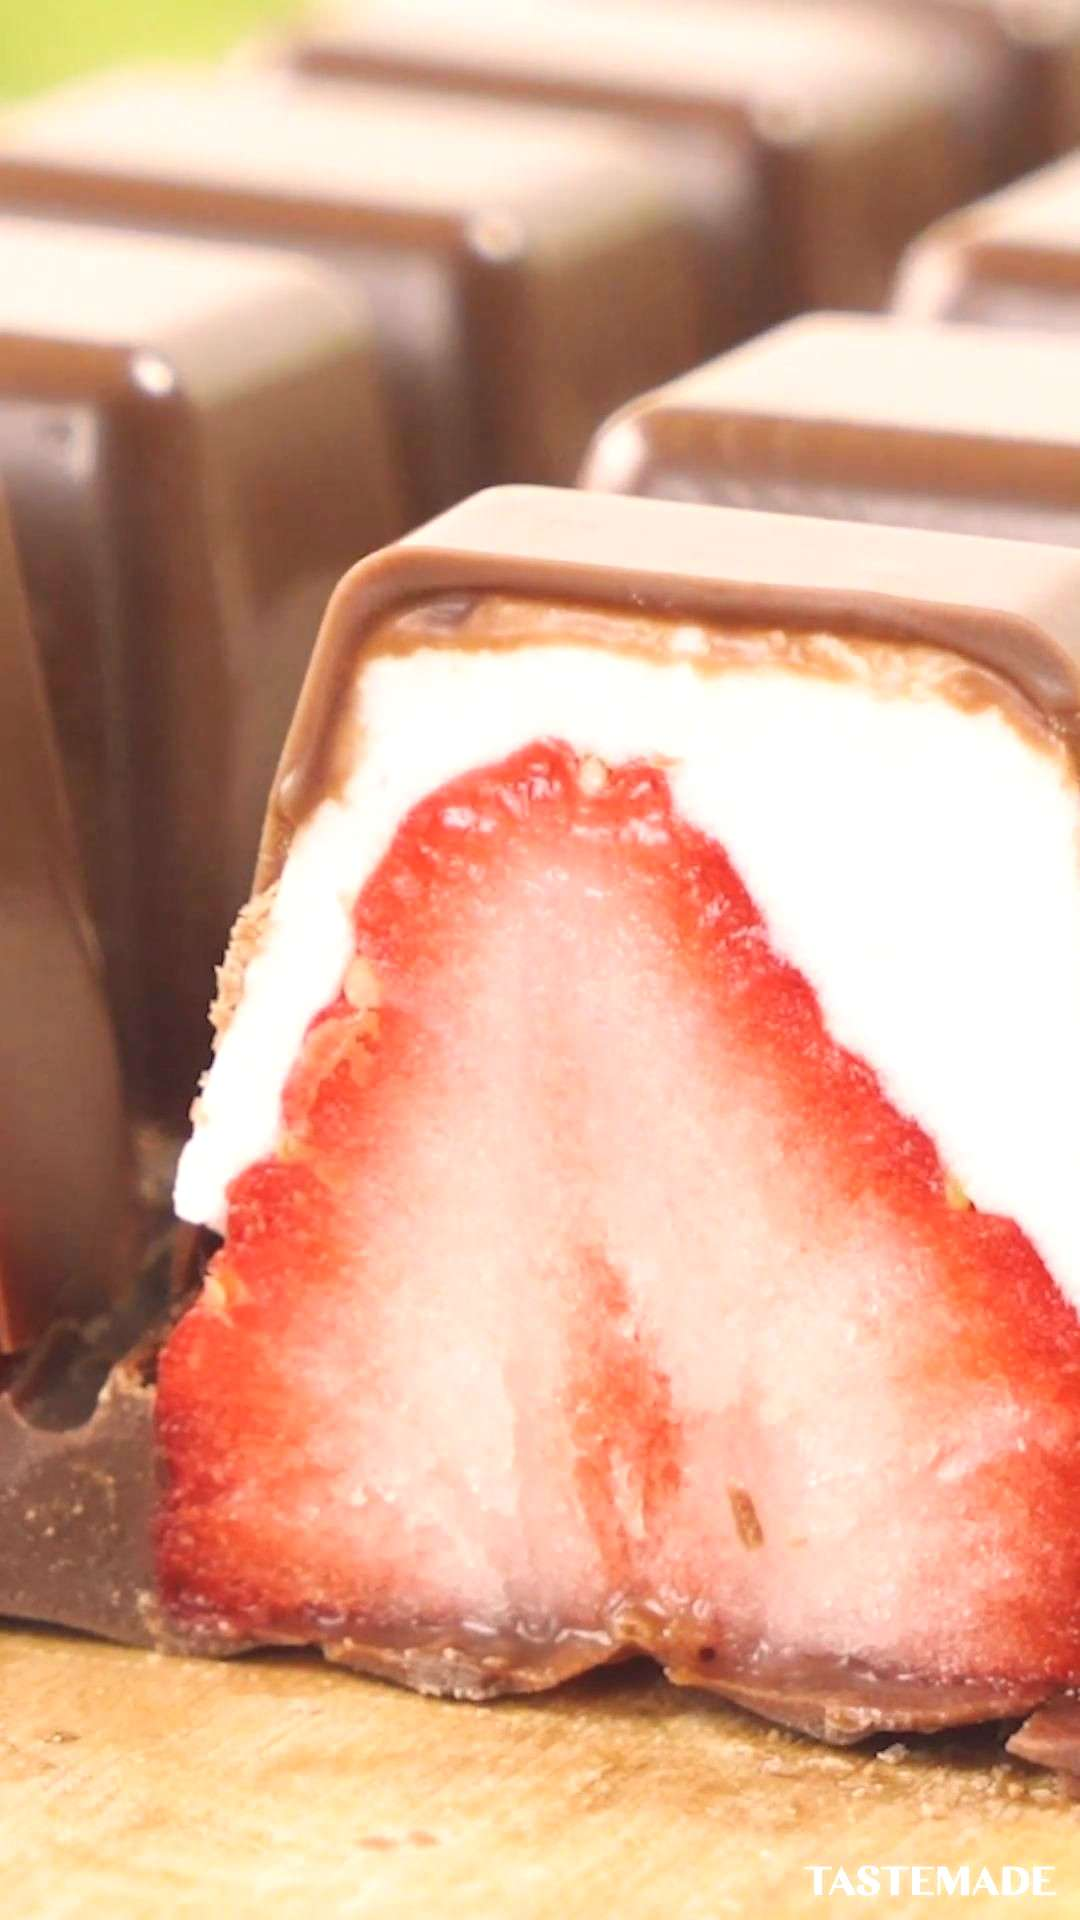 3-Ingredient Strawberries amp Cream Truffles The perfect chocolate treat for Valentines Day or any